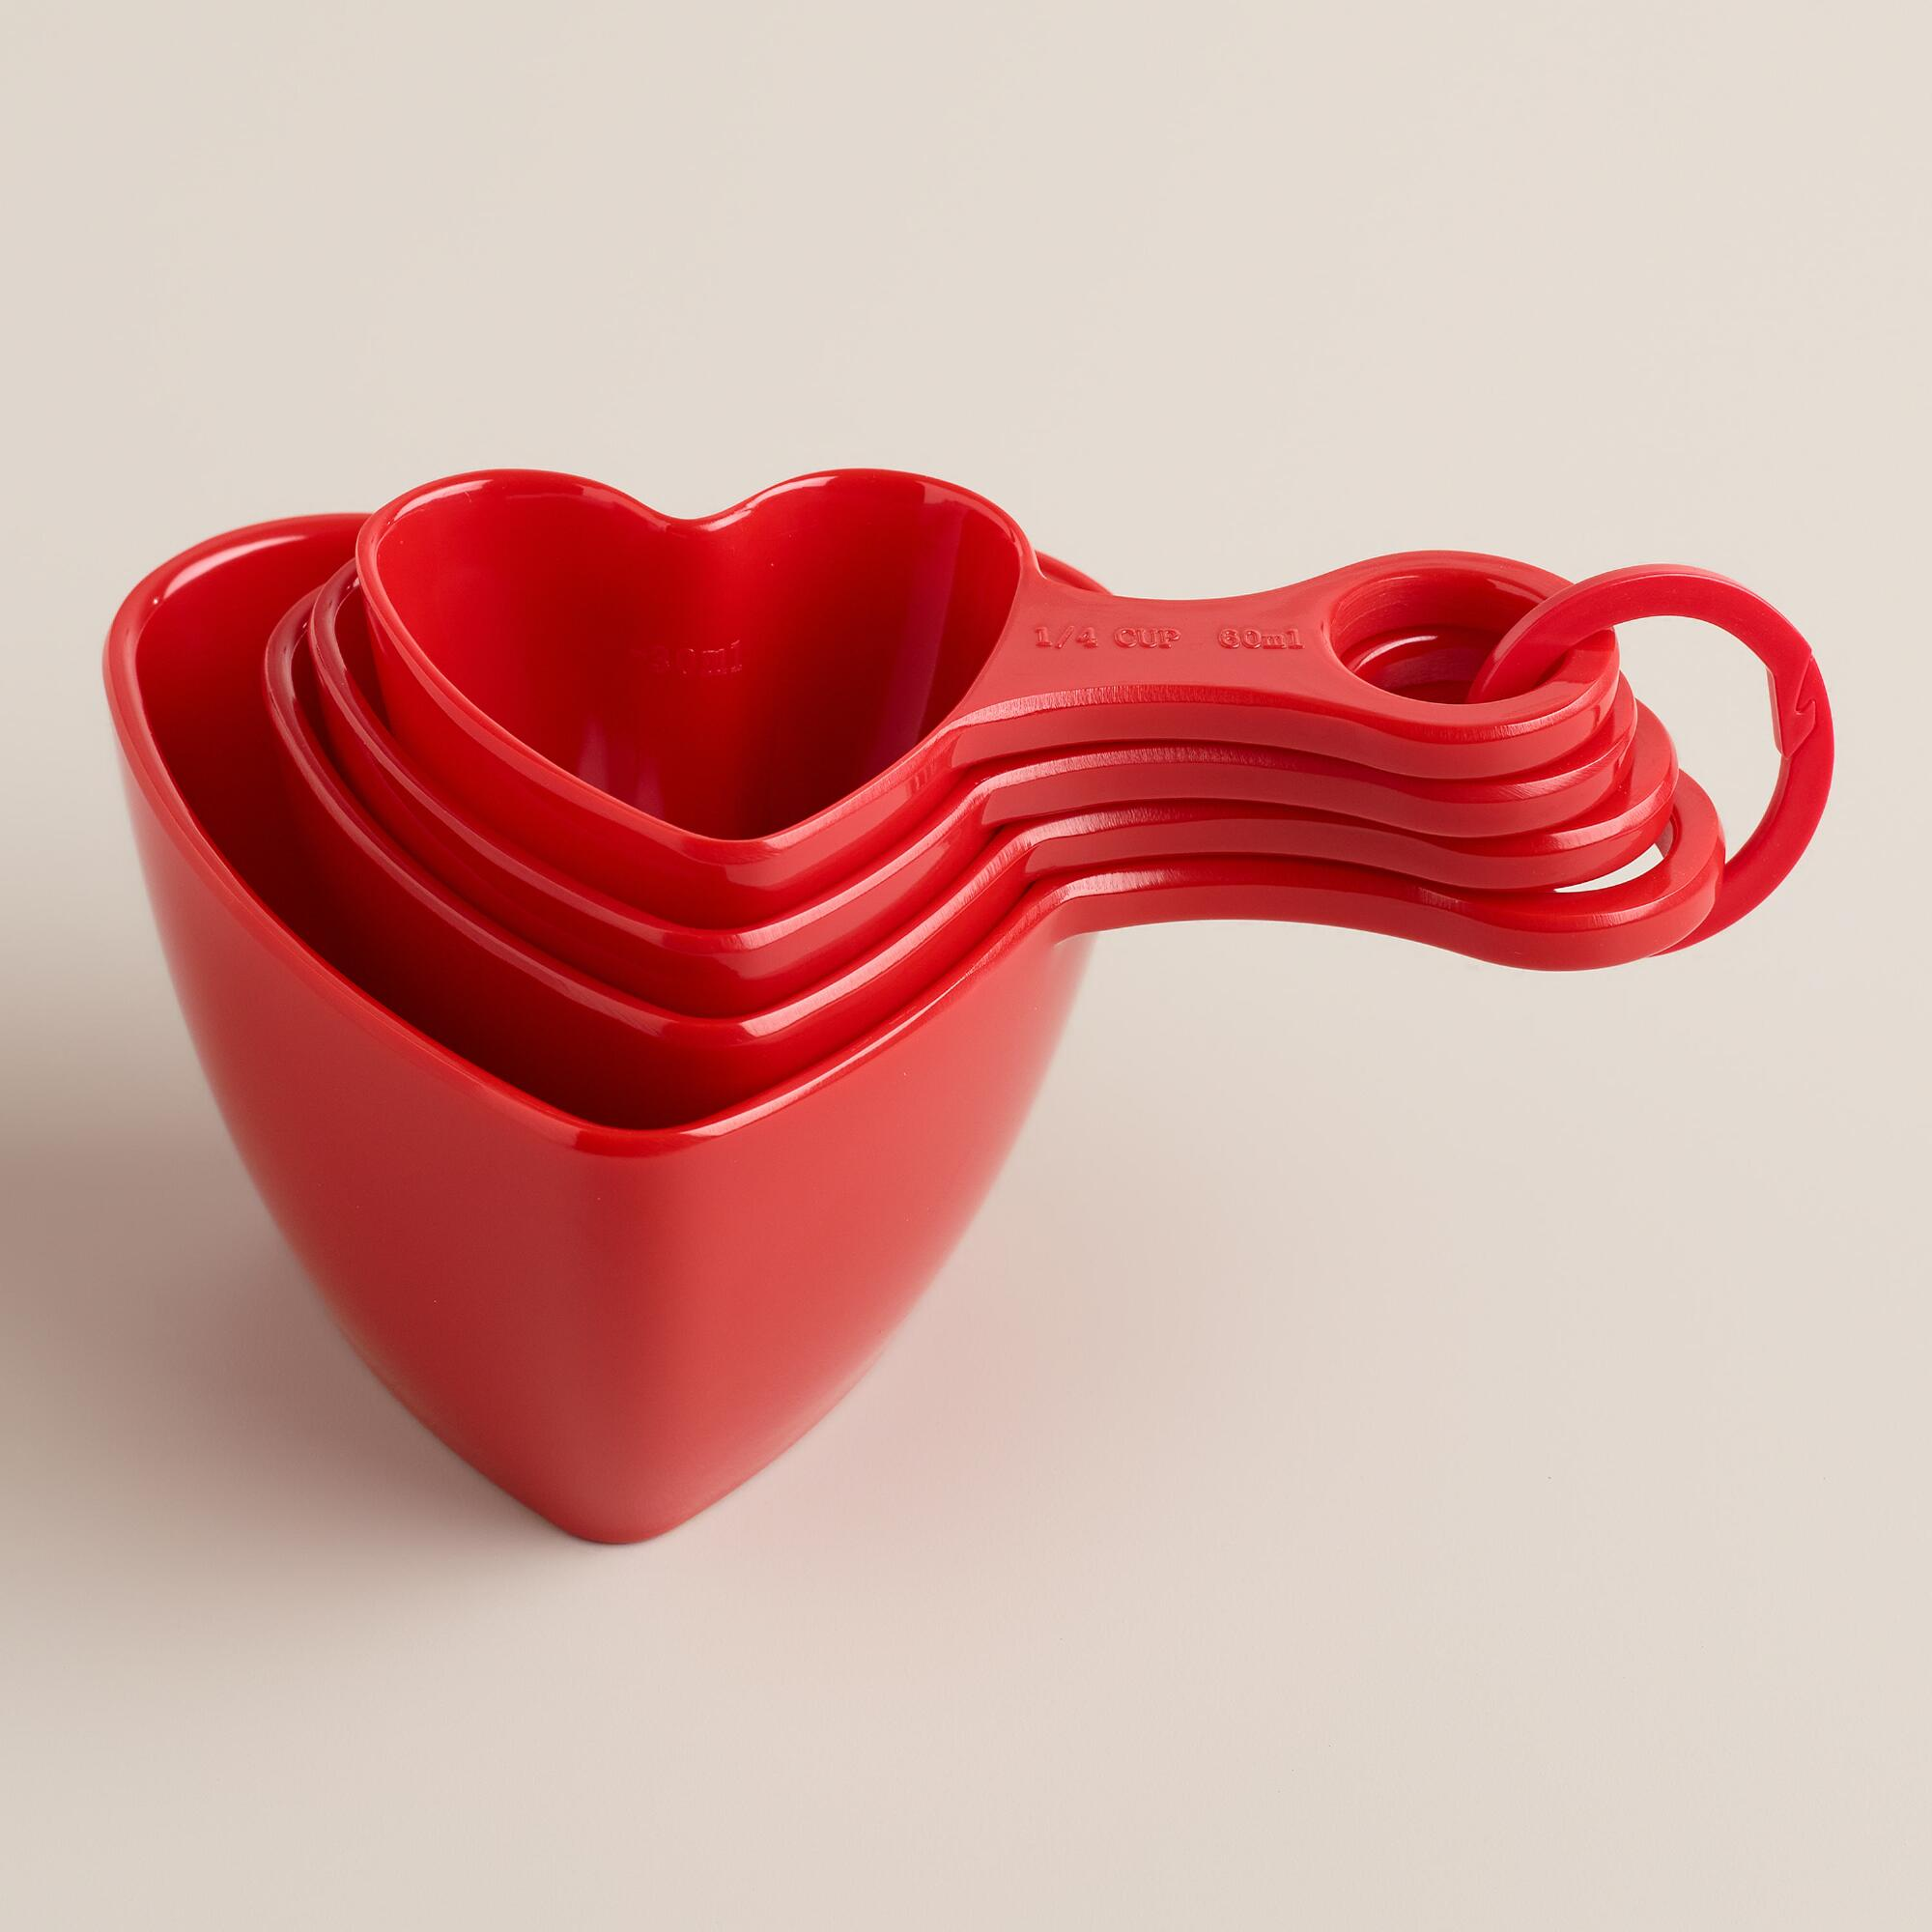 Red measuring cups